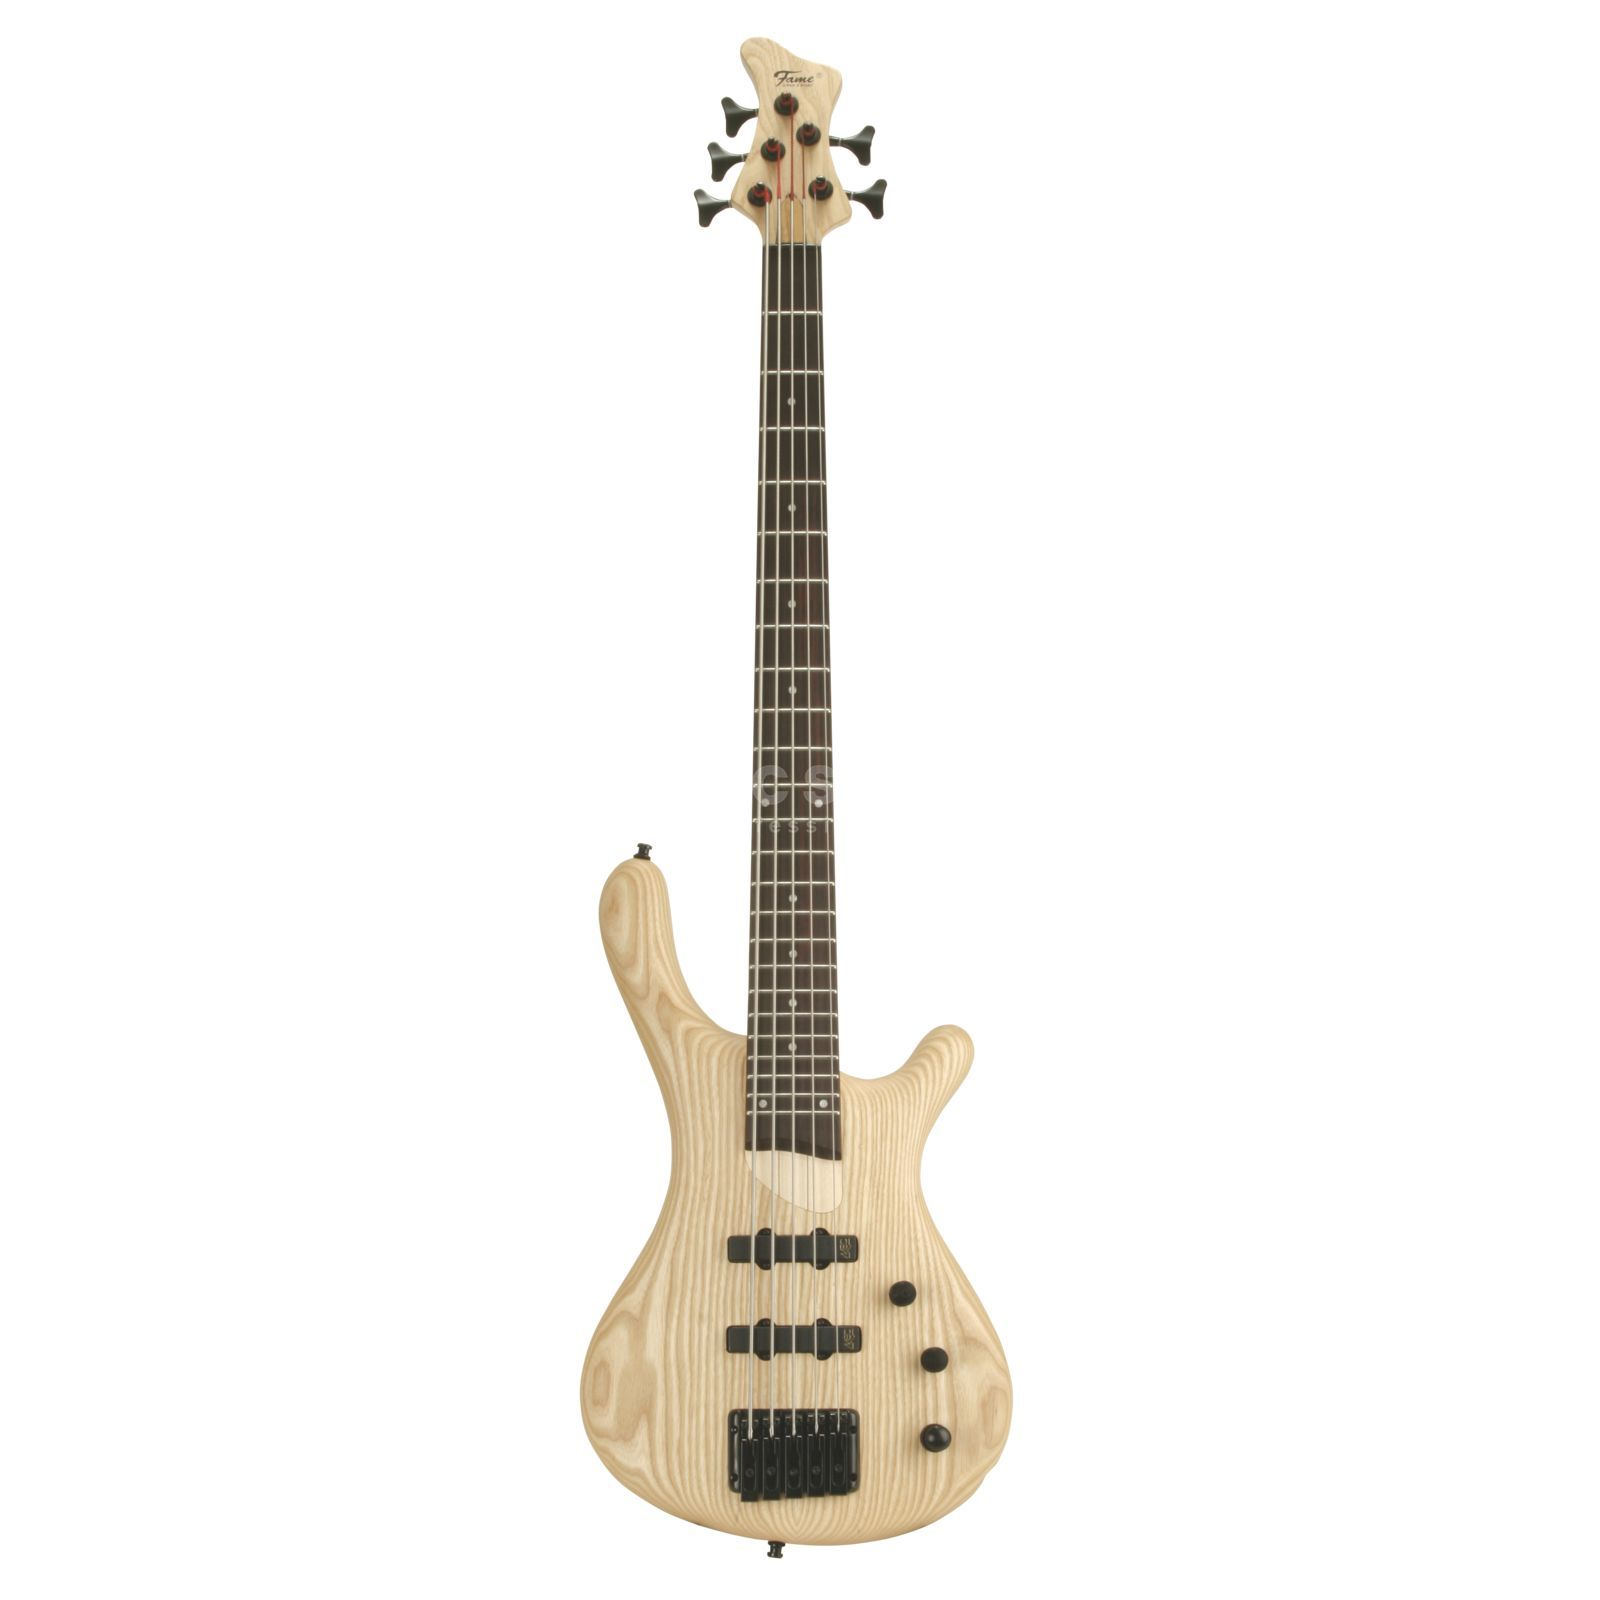 Fame Baphomet Blonde 5, 5-String E- Bass Guitar, Oil Finish Zdjęcie produktu